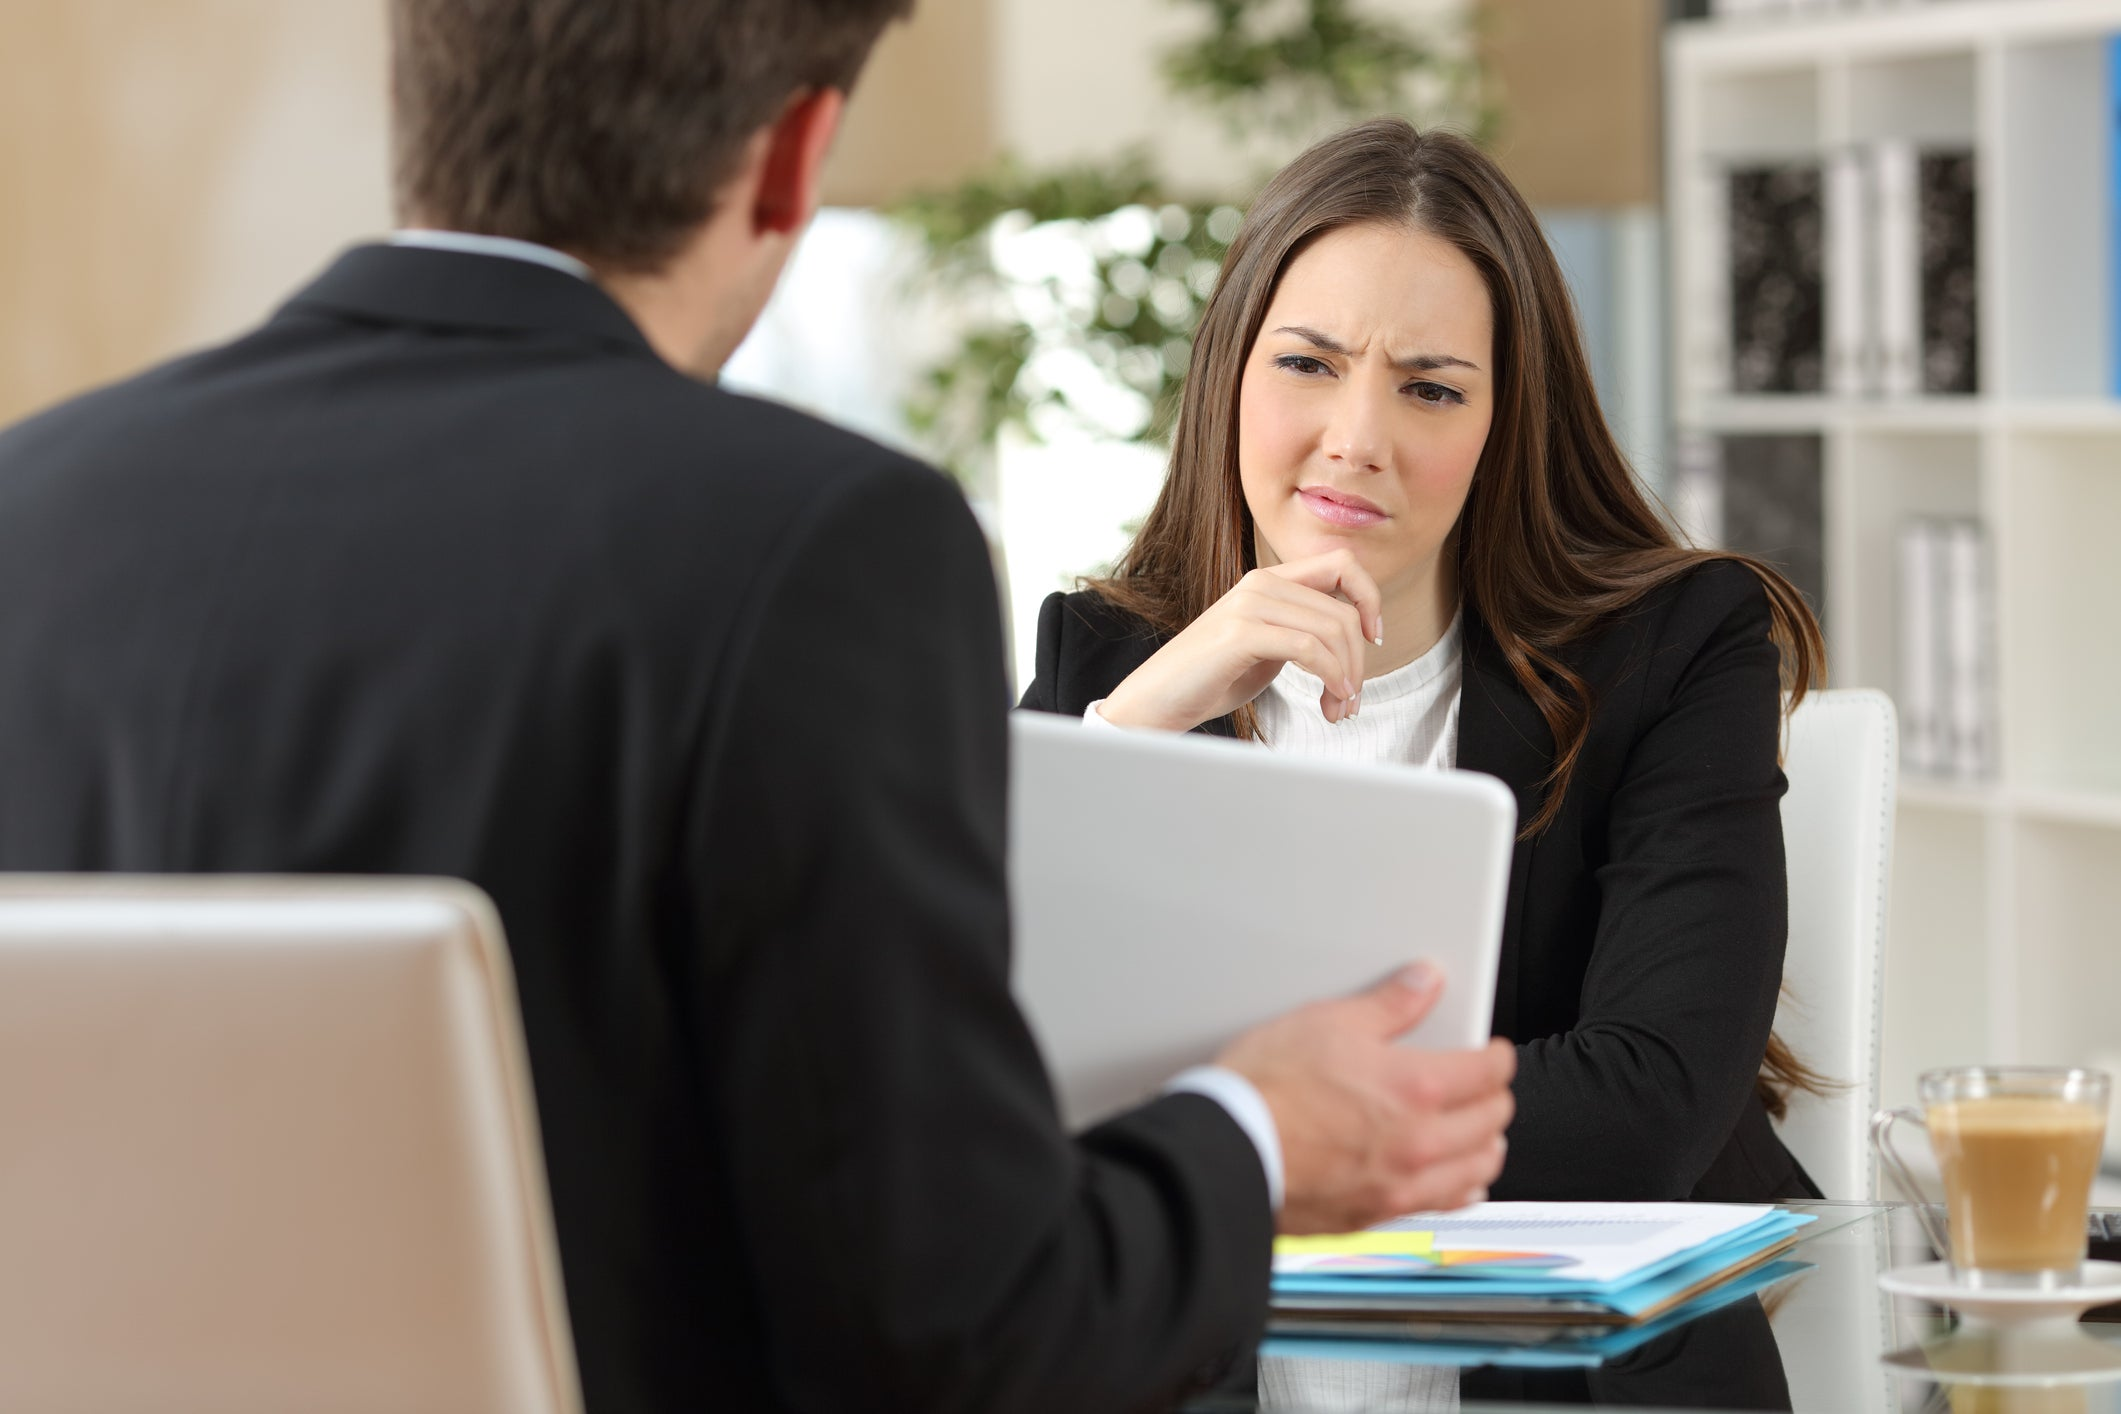 Woman in a suit looking skeptical at a tablet held by a man sitting across from her.